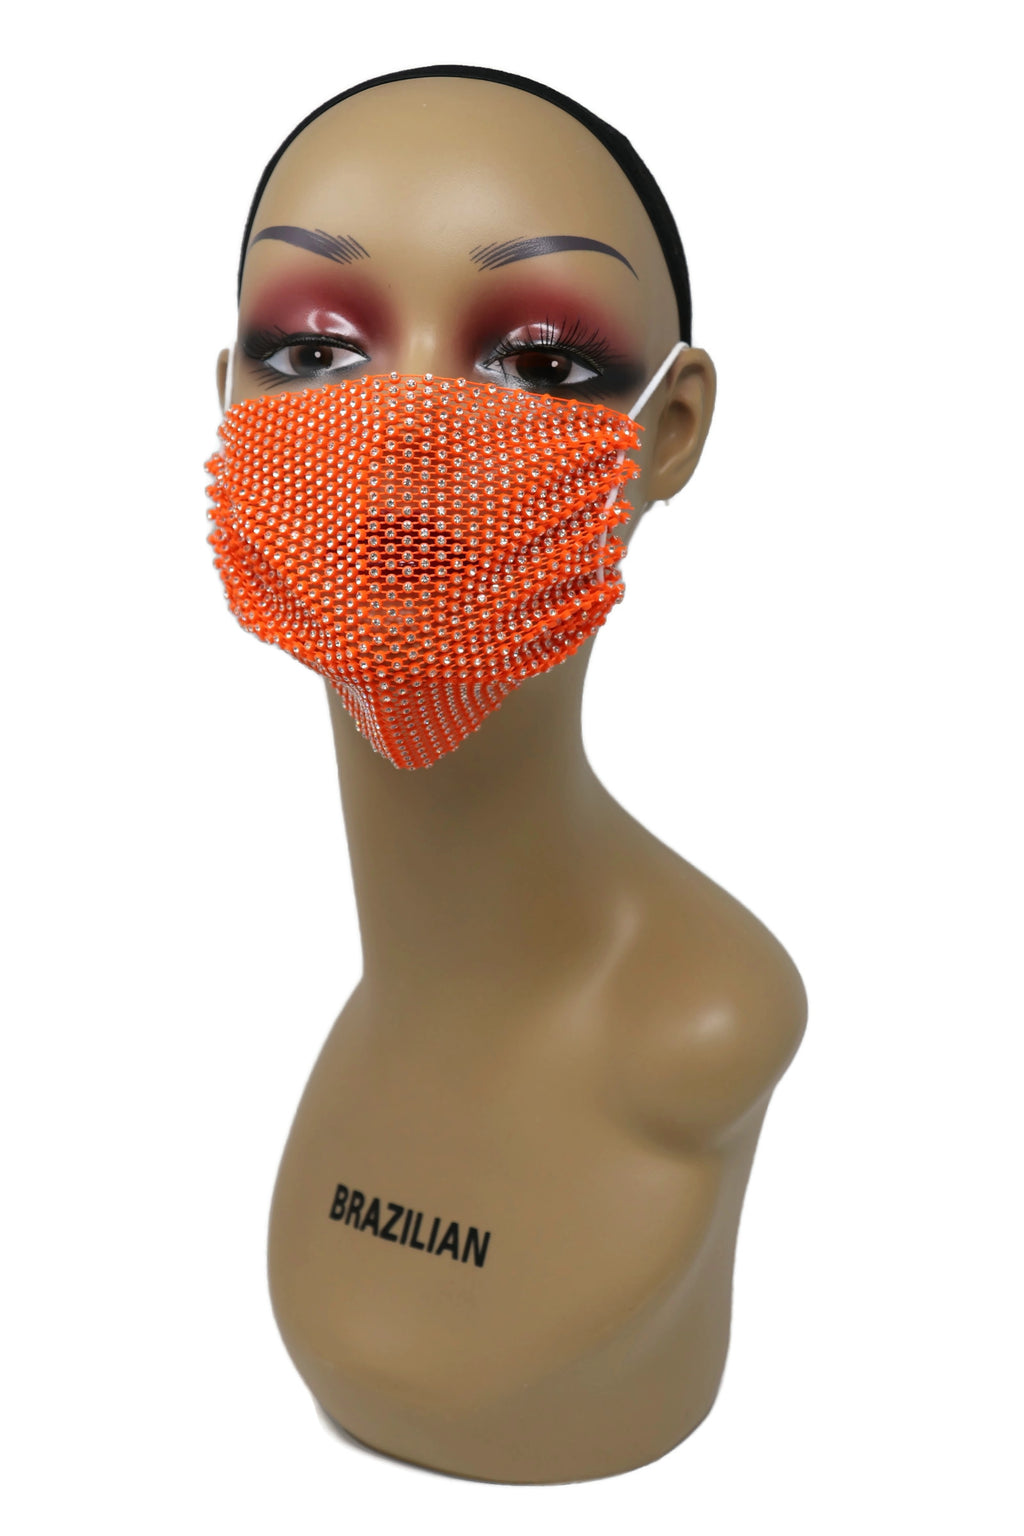 Grid Rhinestone Crystal Mask(Orange)